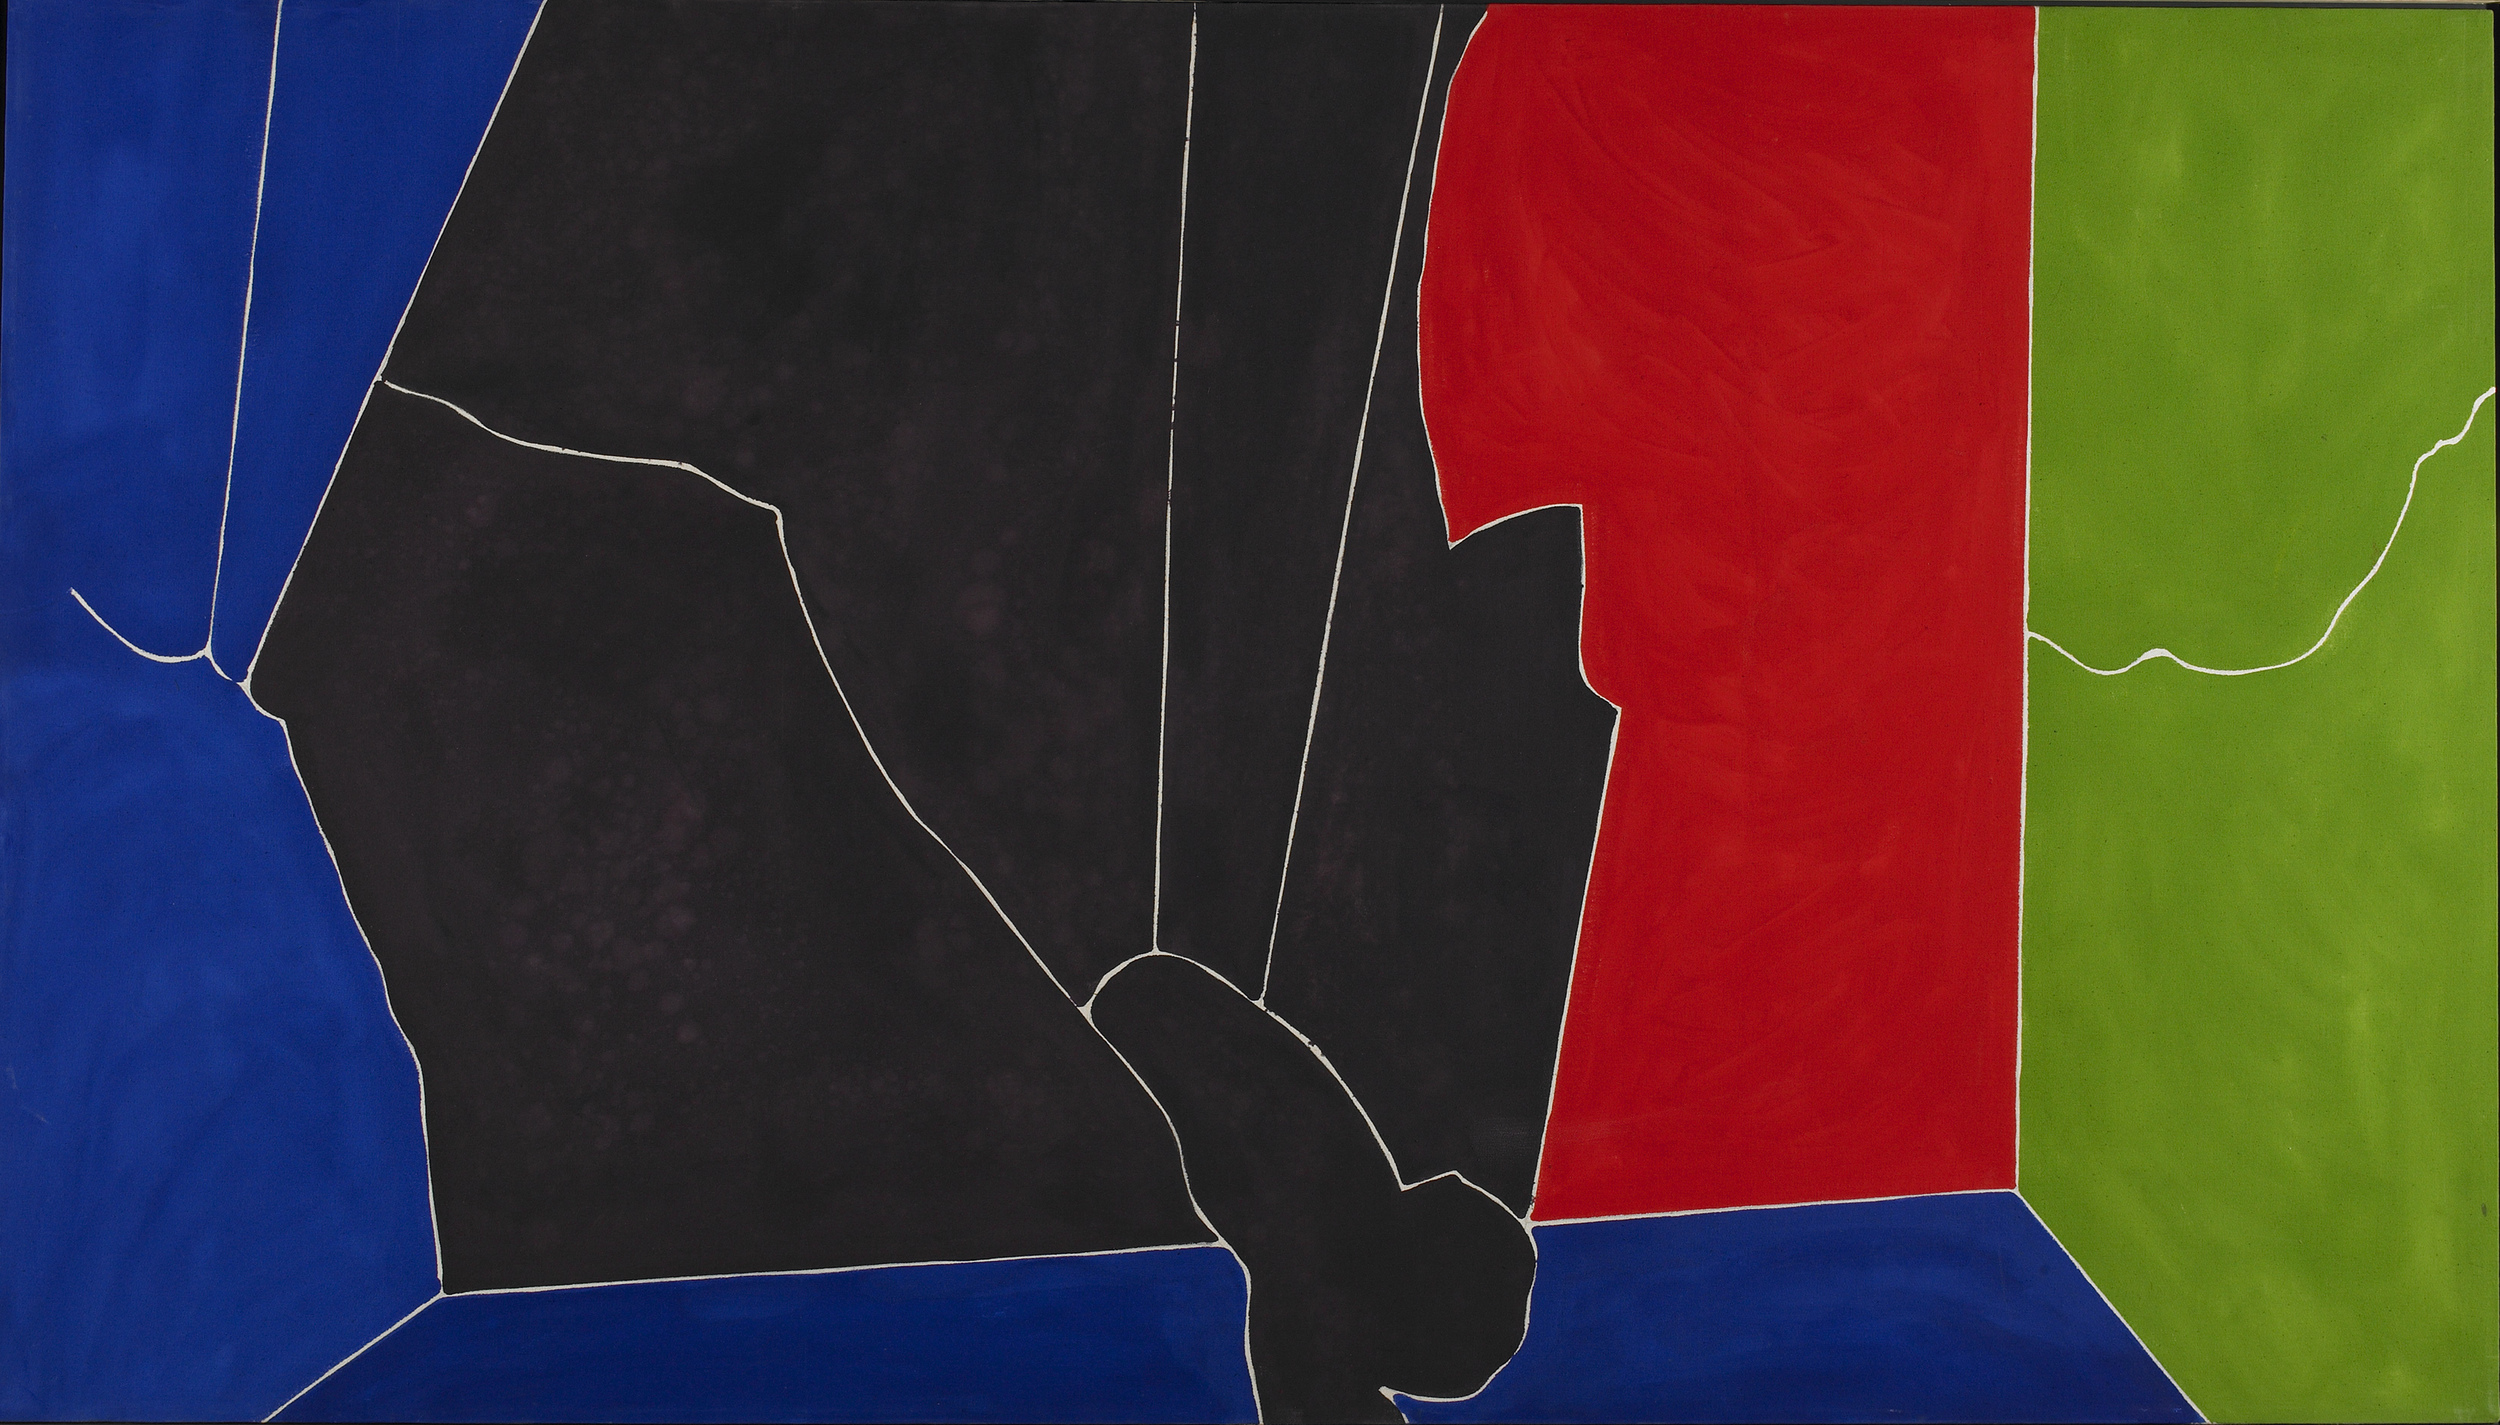 New Synthesis #26  , Acrylic on canvas, 1981, 48 x 84 inches